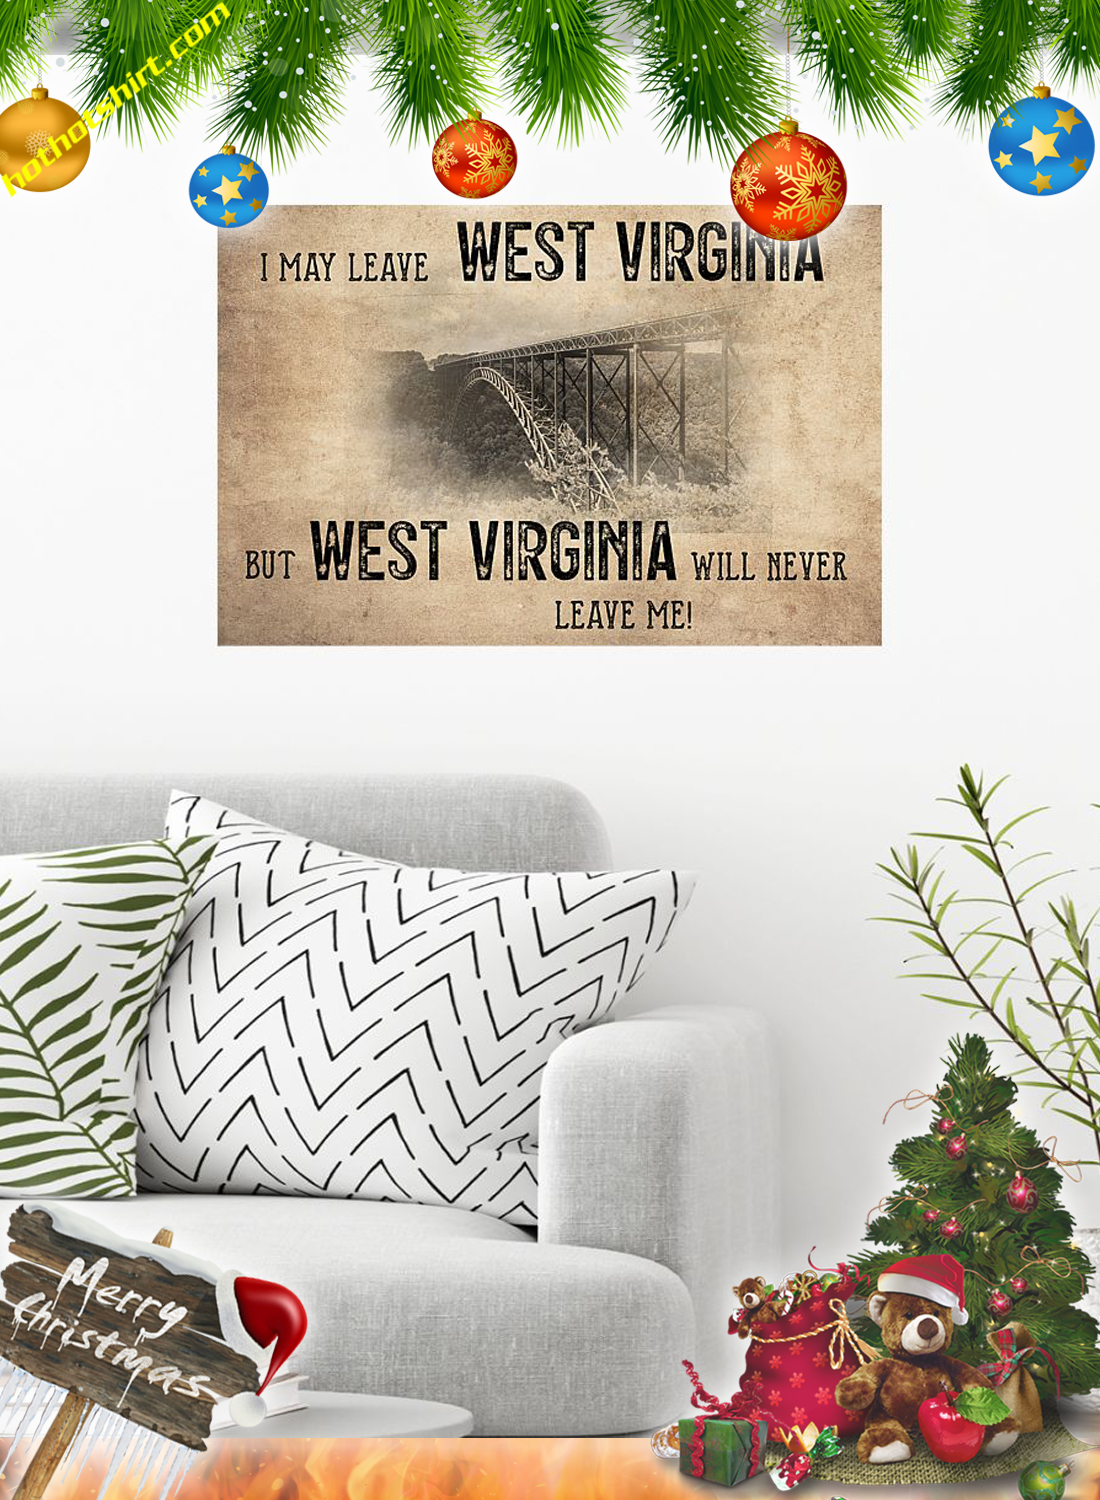 I may leave west virginia but west virginia will never leave me poster 1